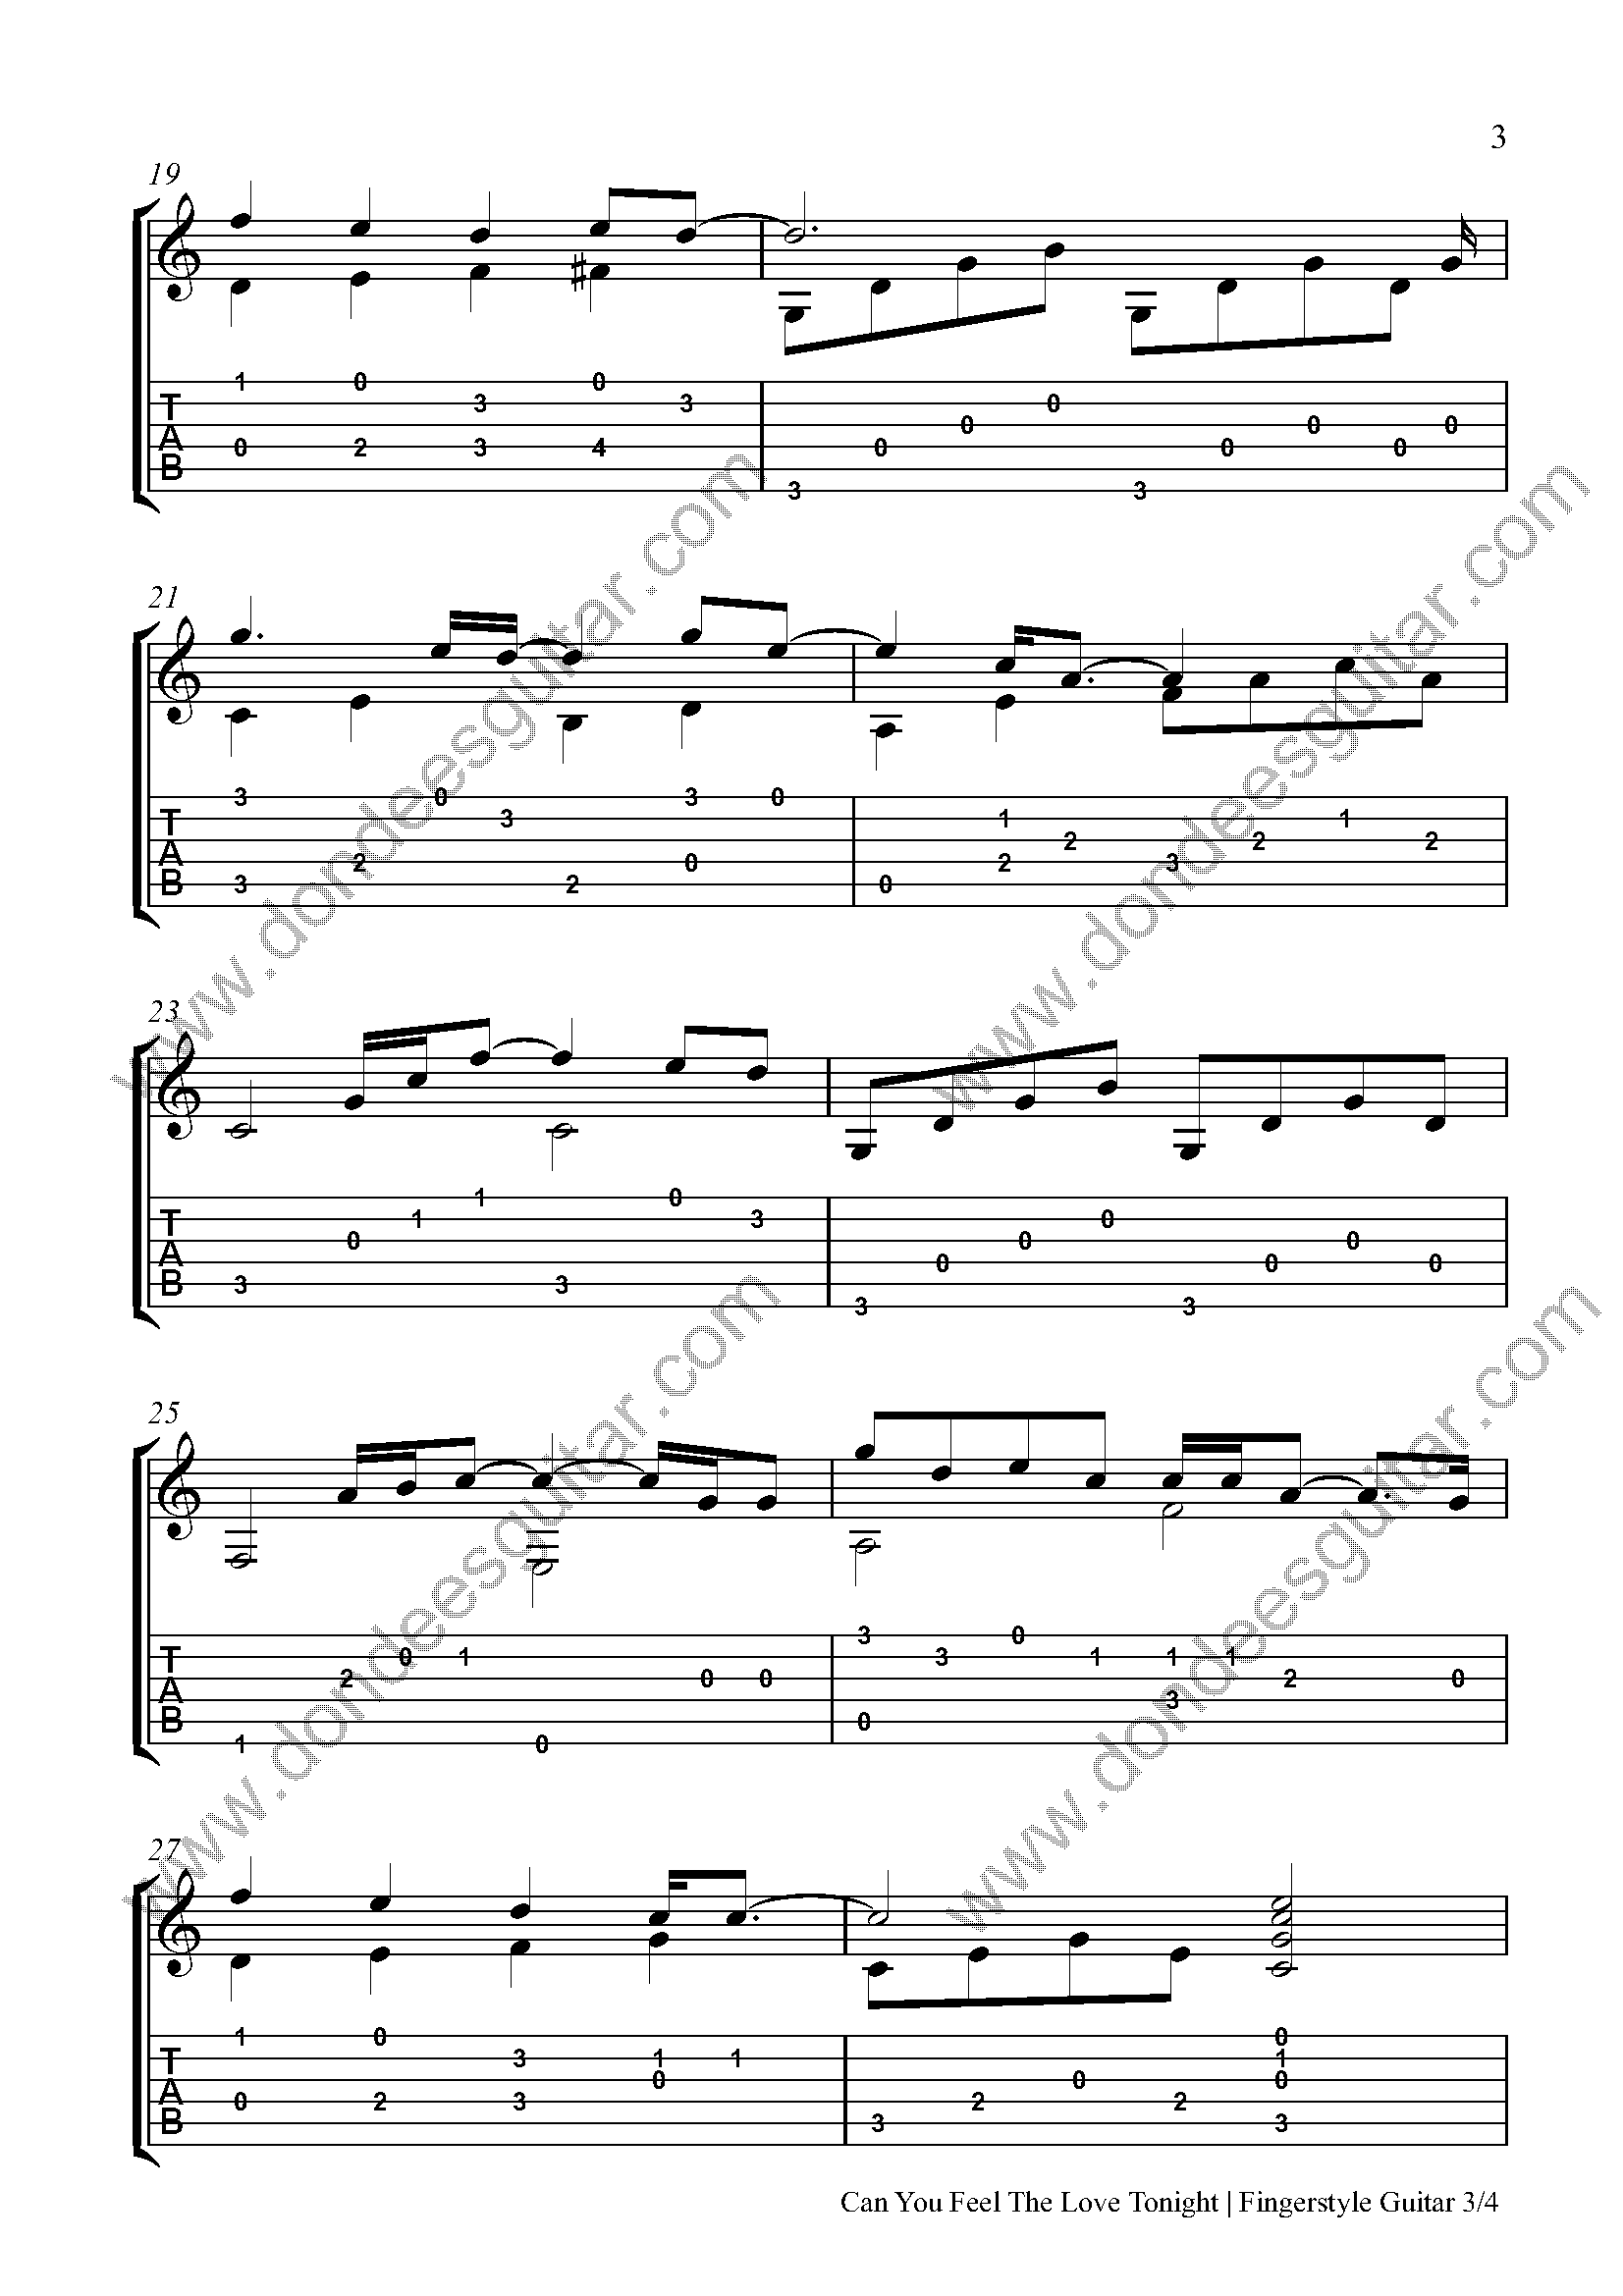 Can You Feel The Love Tonight Fingerstyle Tabs